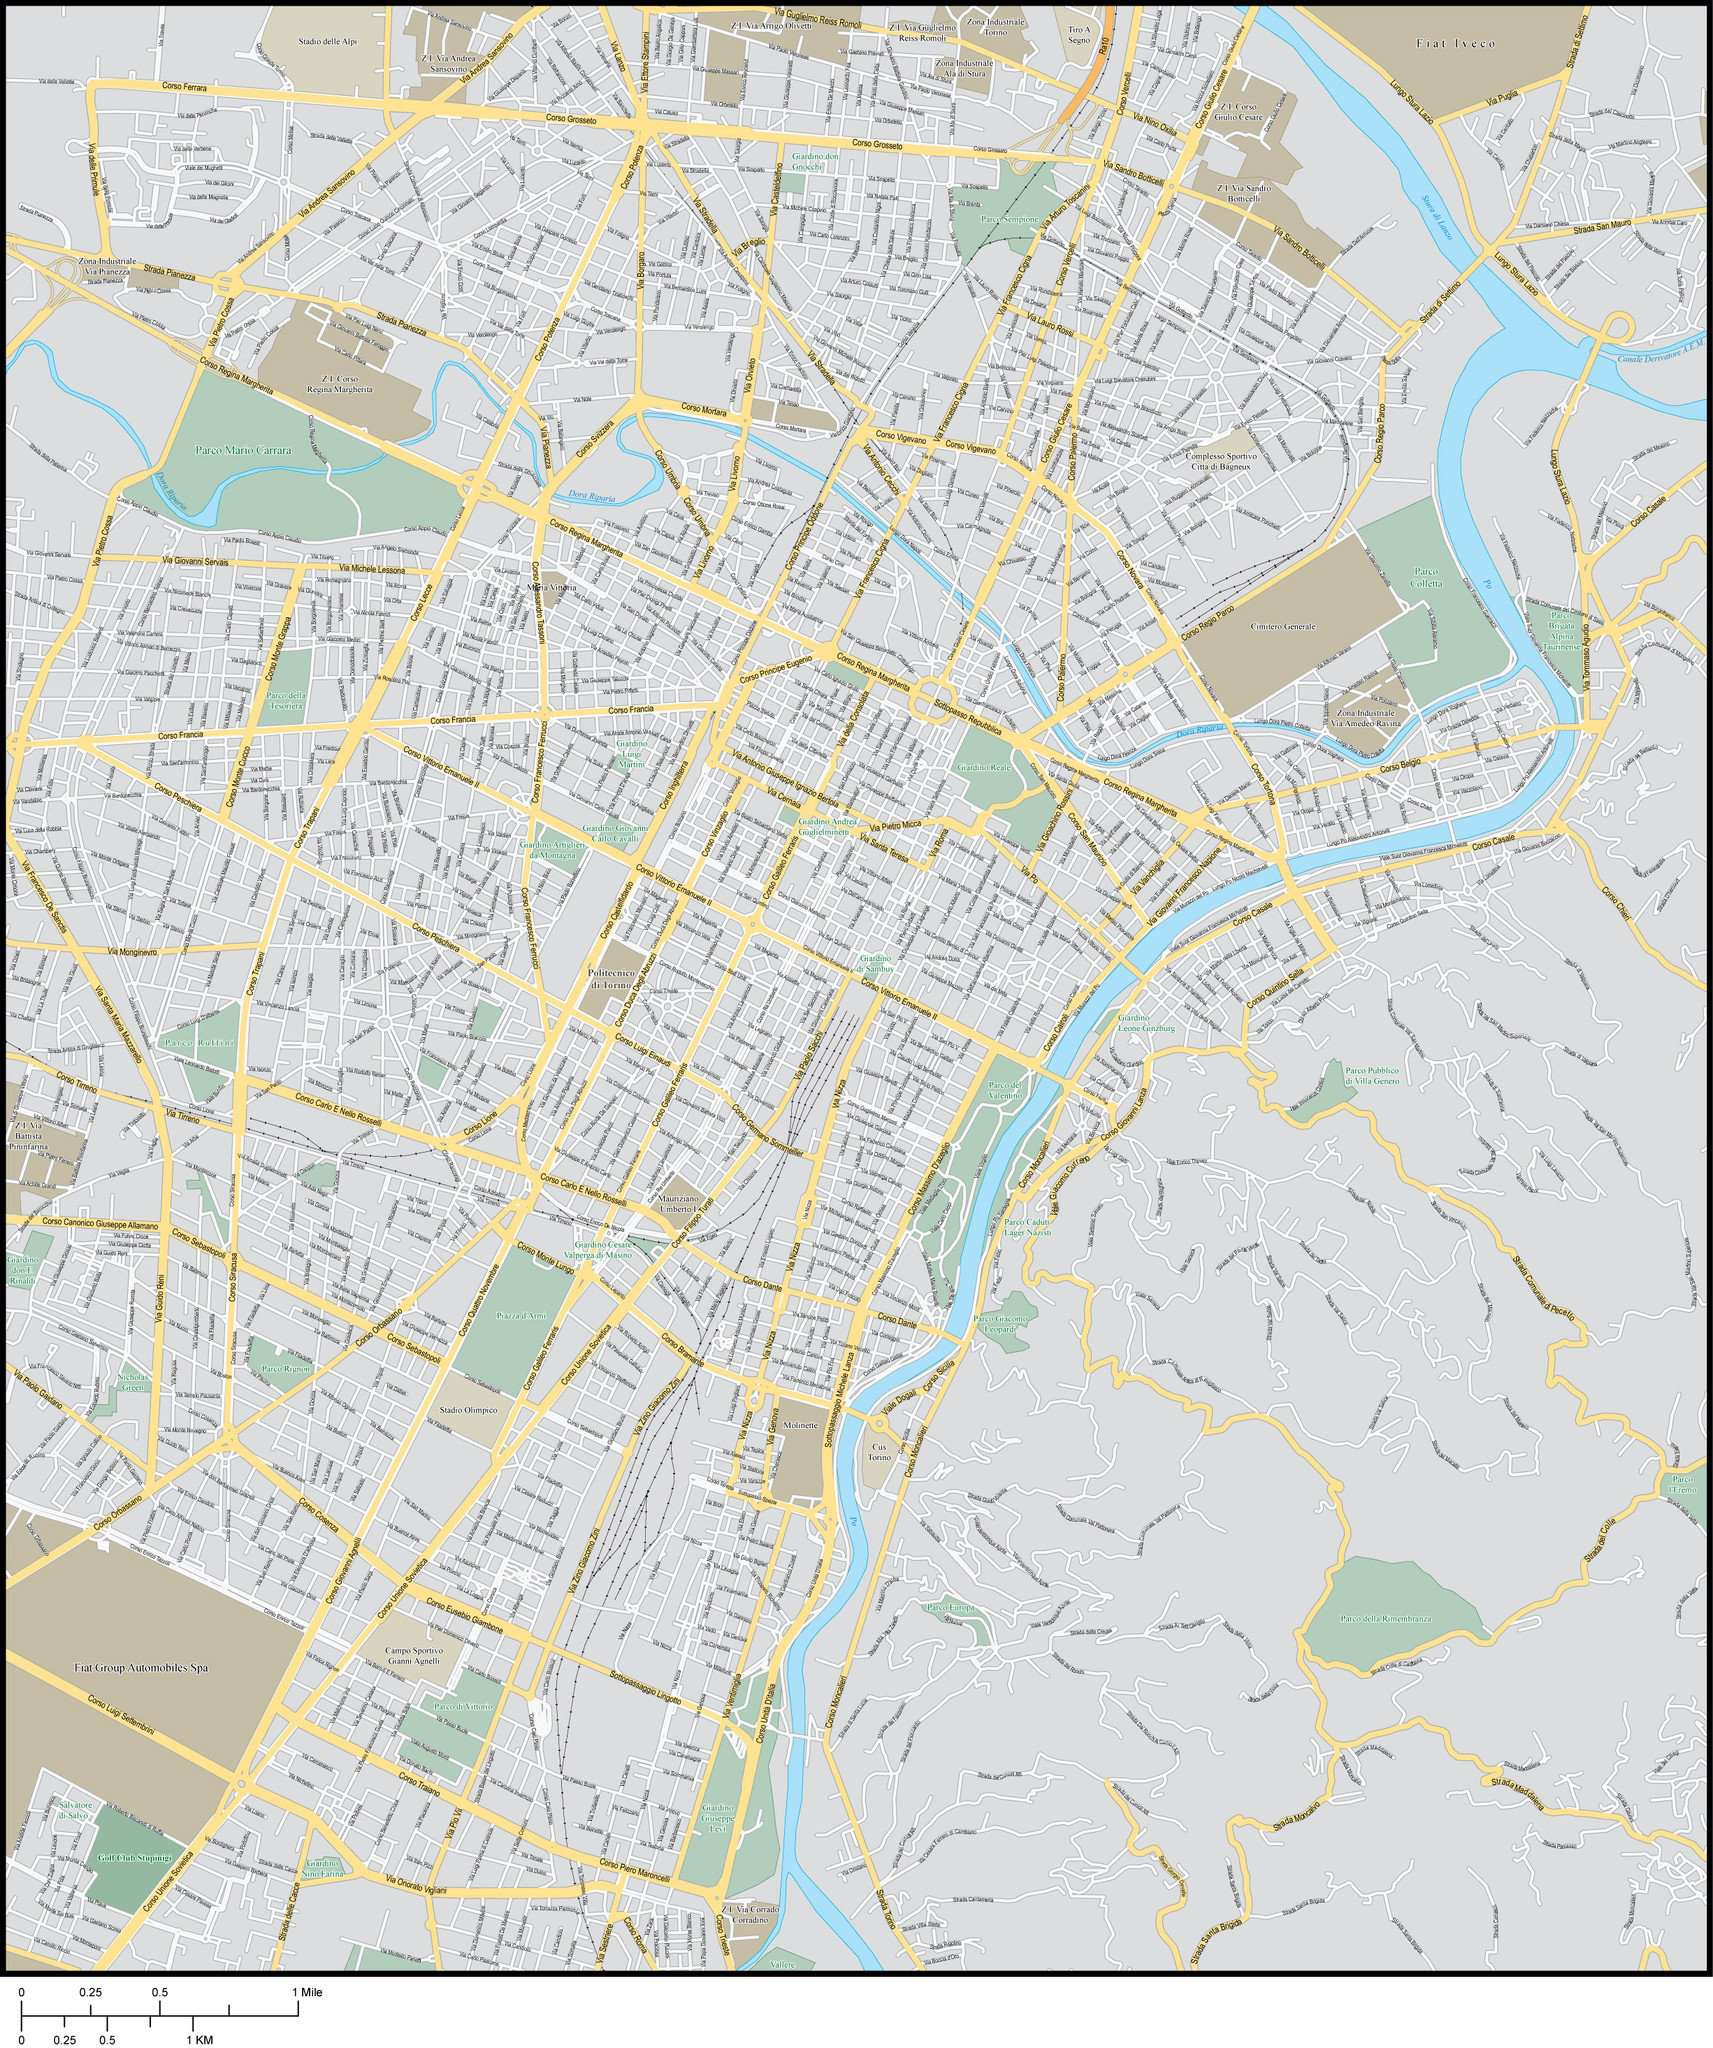 Turin Map Adobe Illustrator Vector Format Map Resources